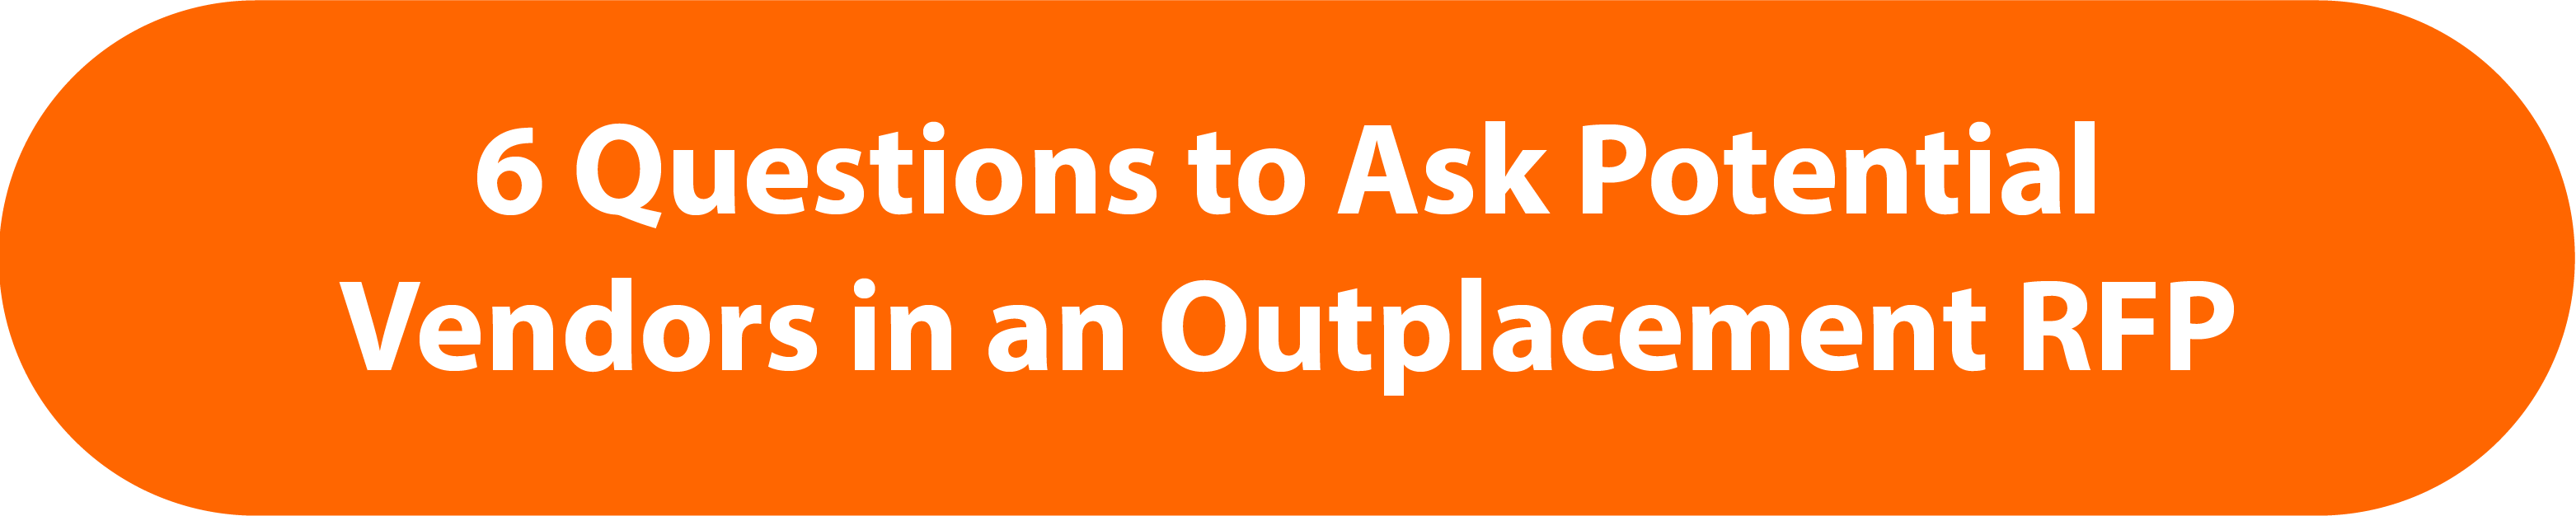 6 Questions to Ask Potential Vendors in an Outplacement RFP